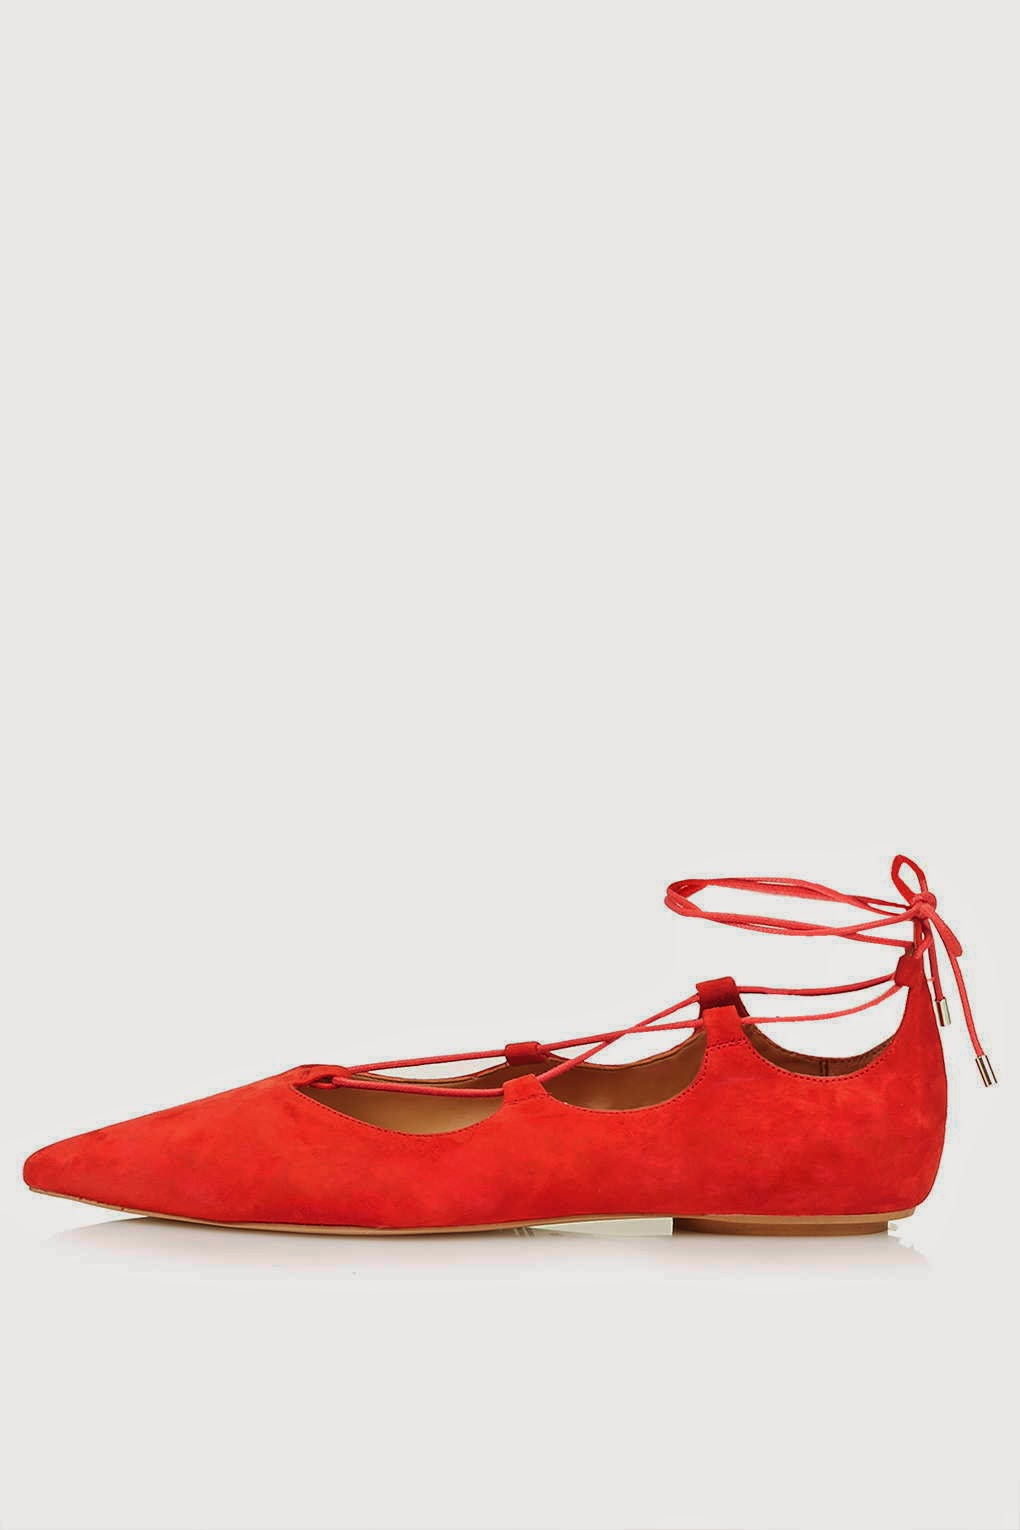 red lace tie-up flat shoes, red pointed shoes with ankle tie,